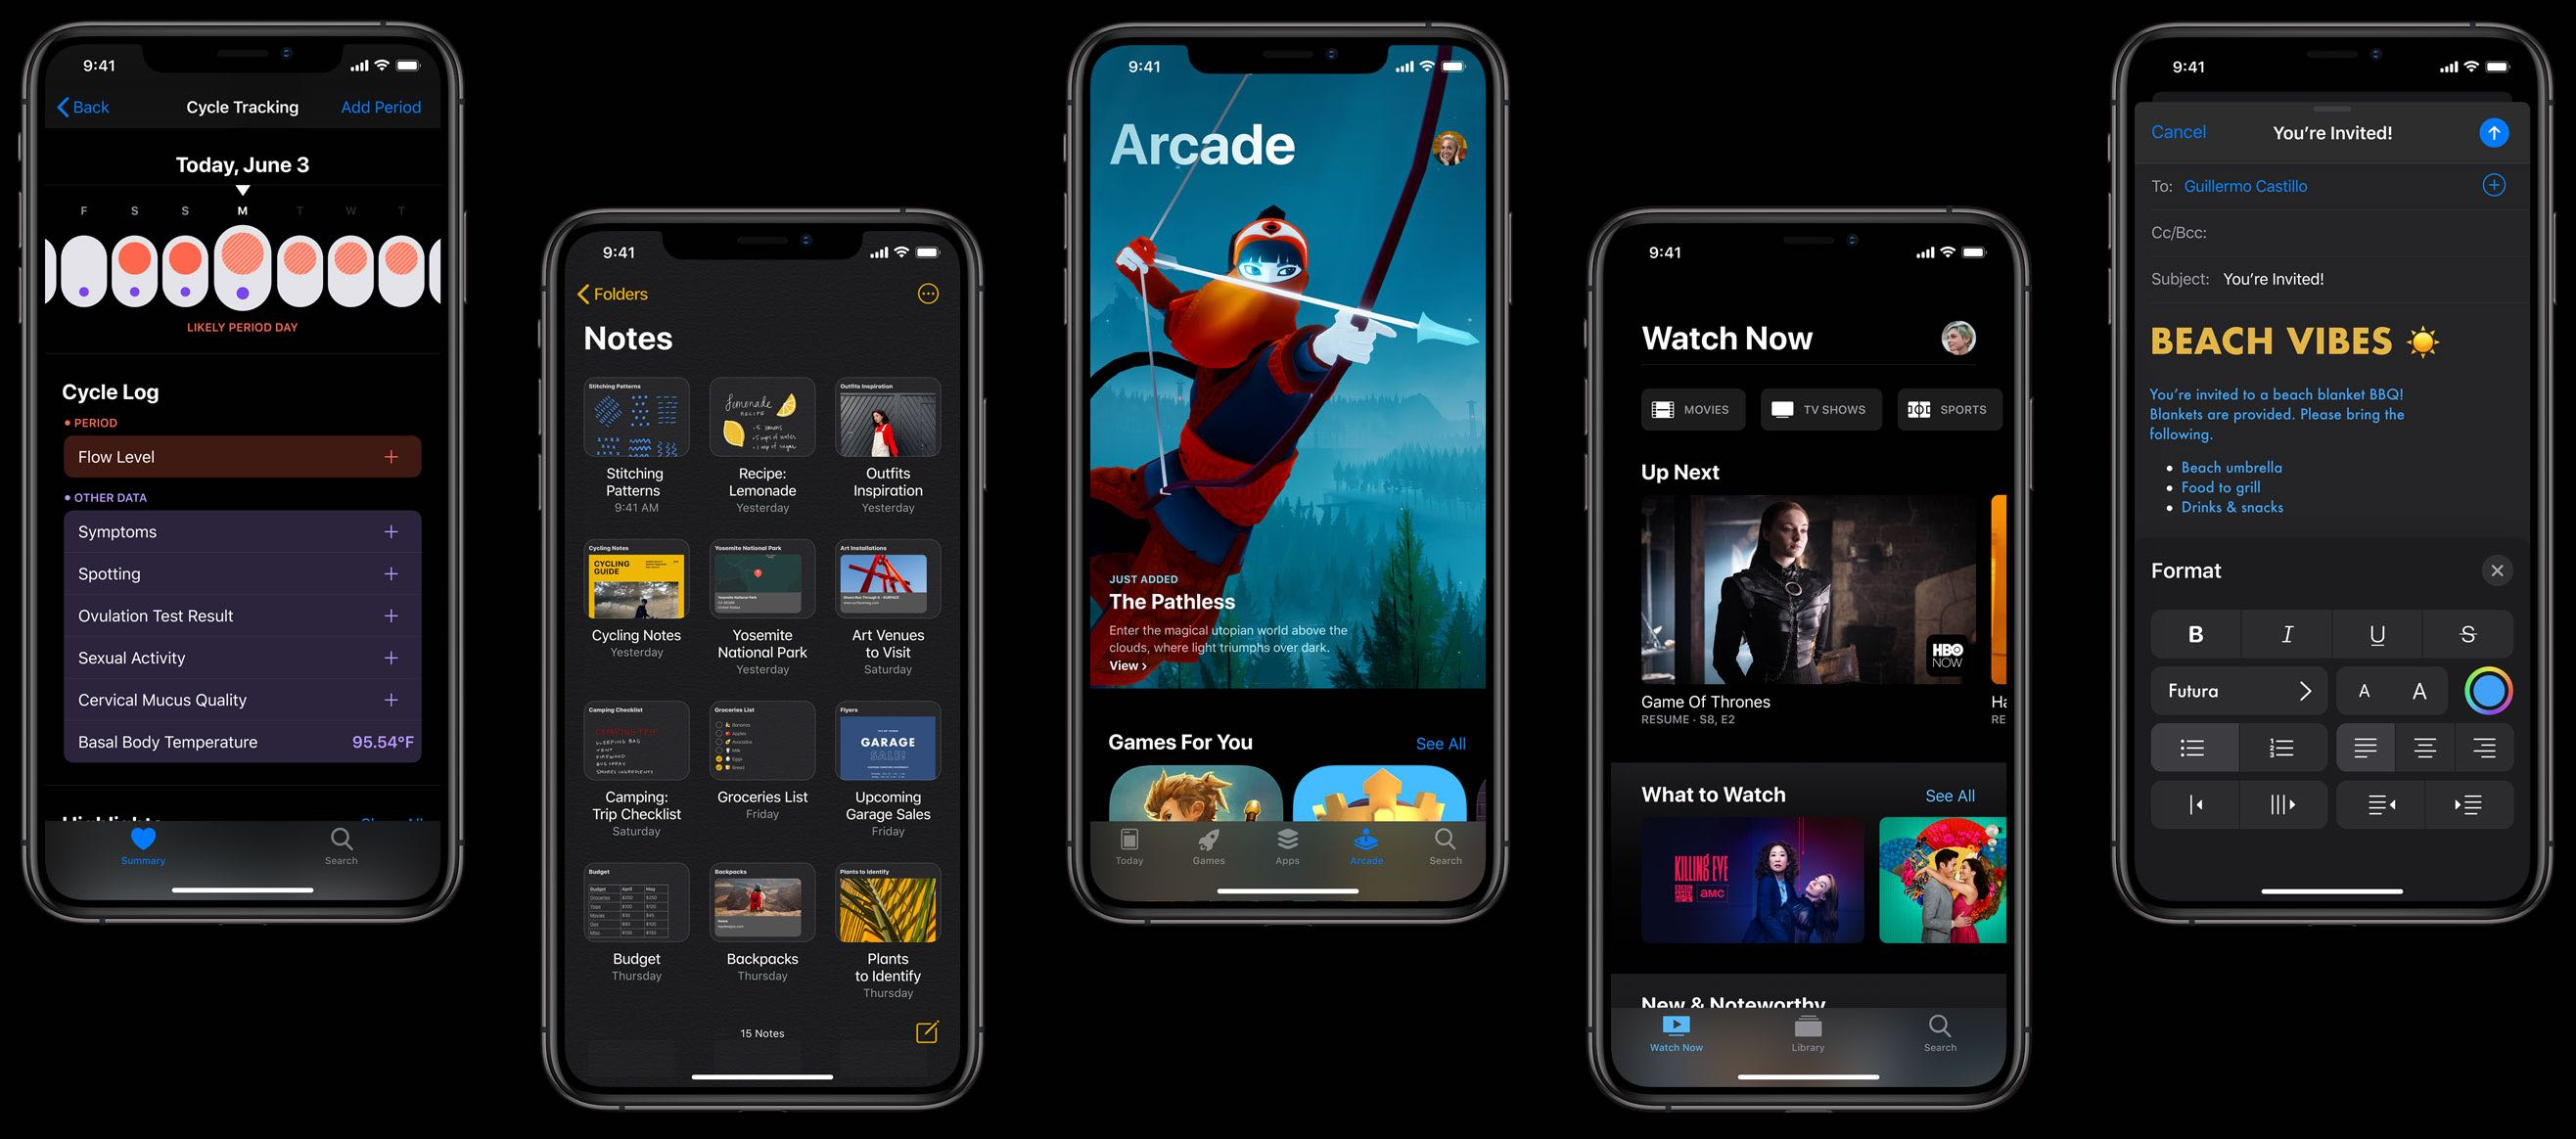 How to downgrade from the iOS 13 or iPadOS beta to the